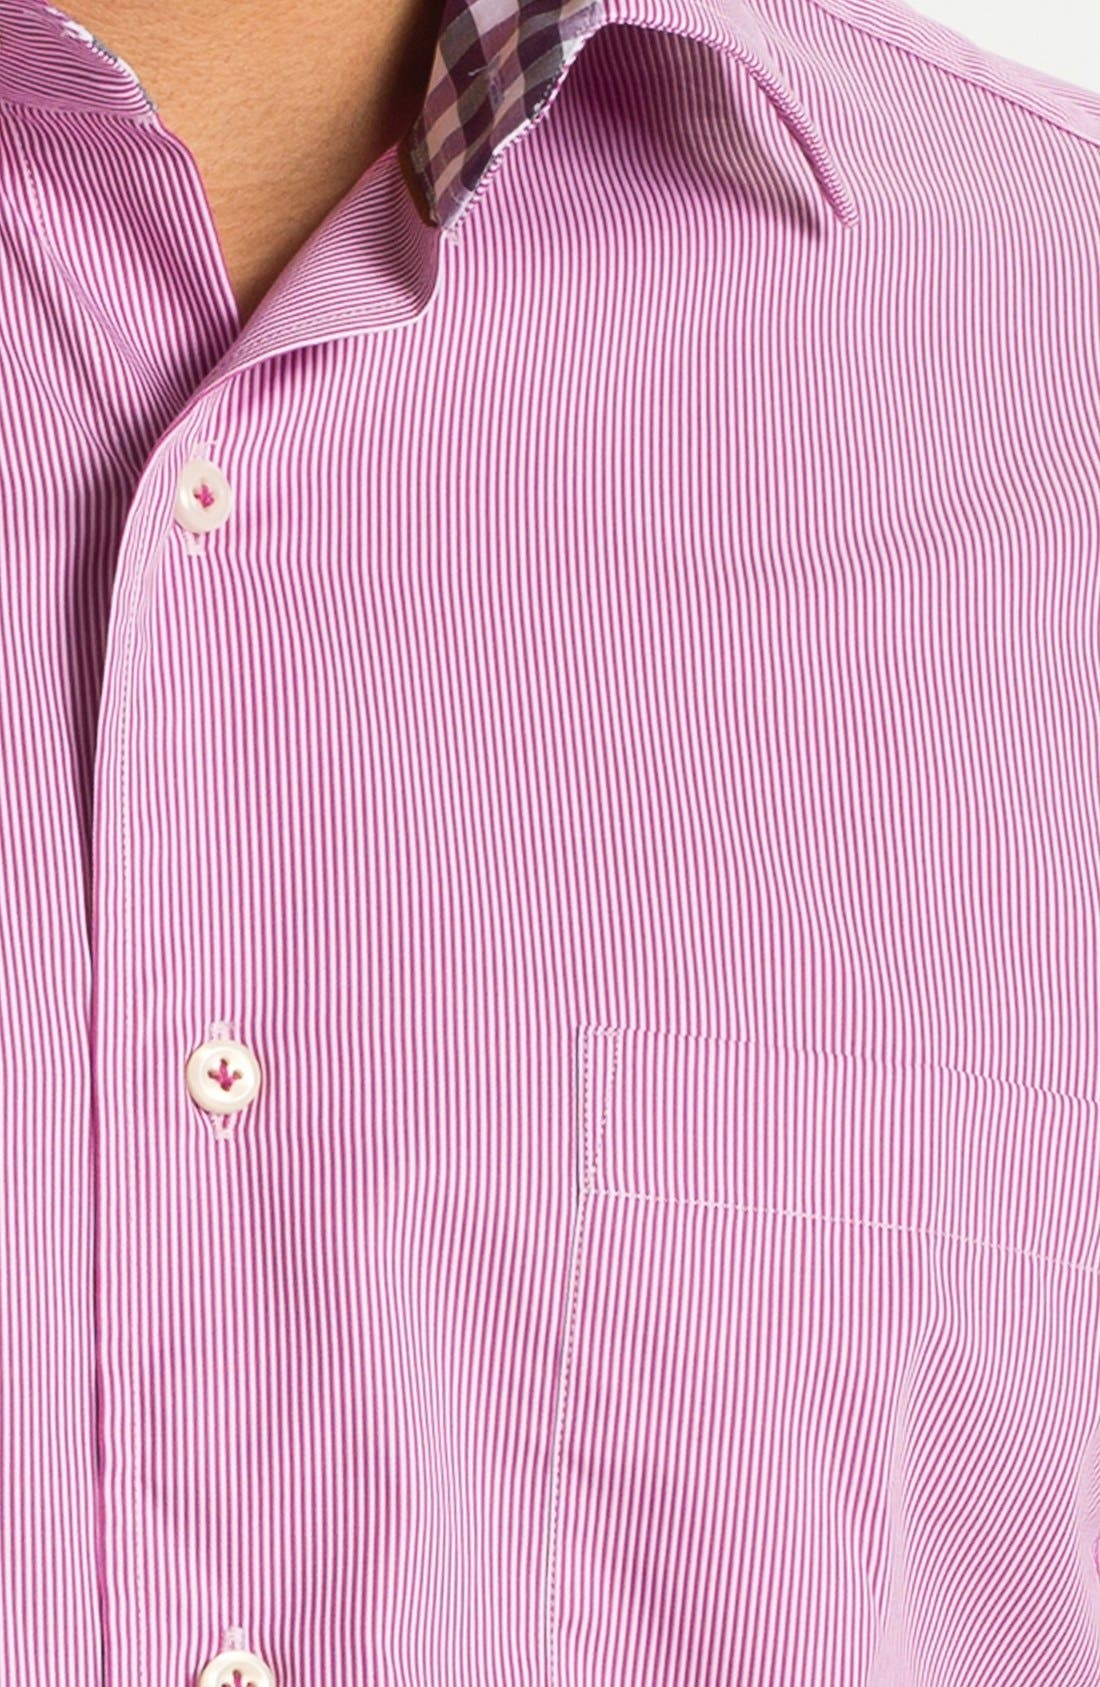 Alternate Image 3  - Peter Millar Regular Fit Sport Shirt (Tall)